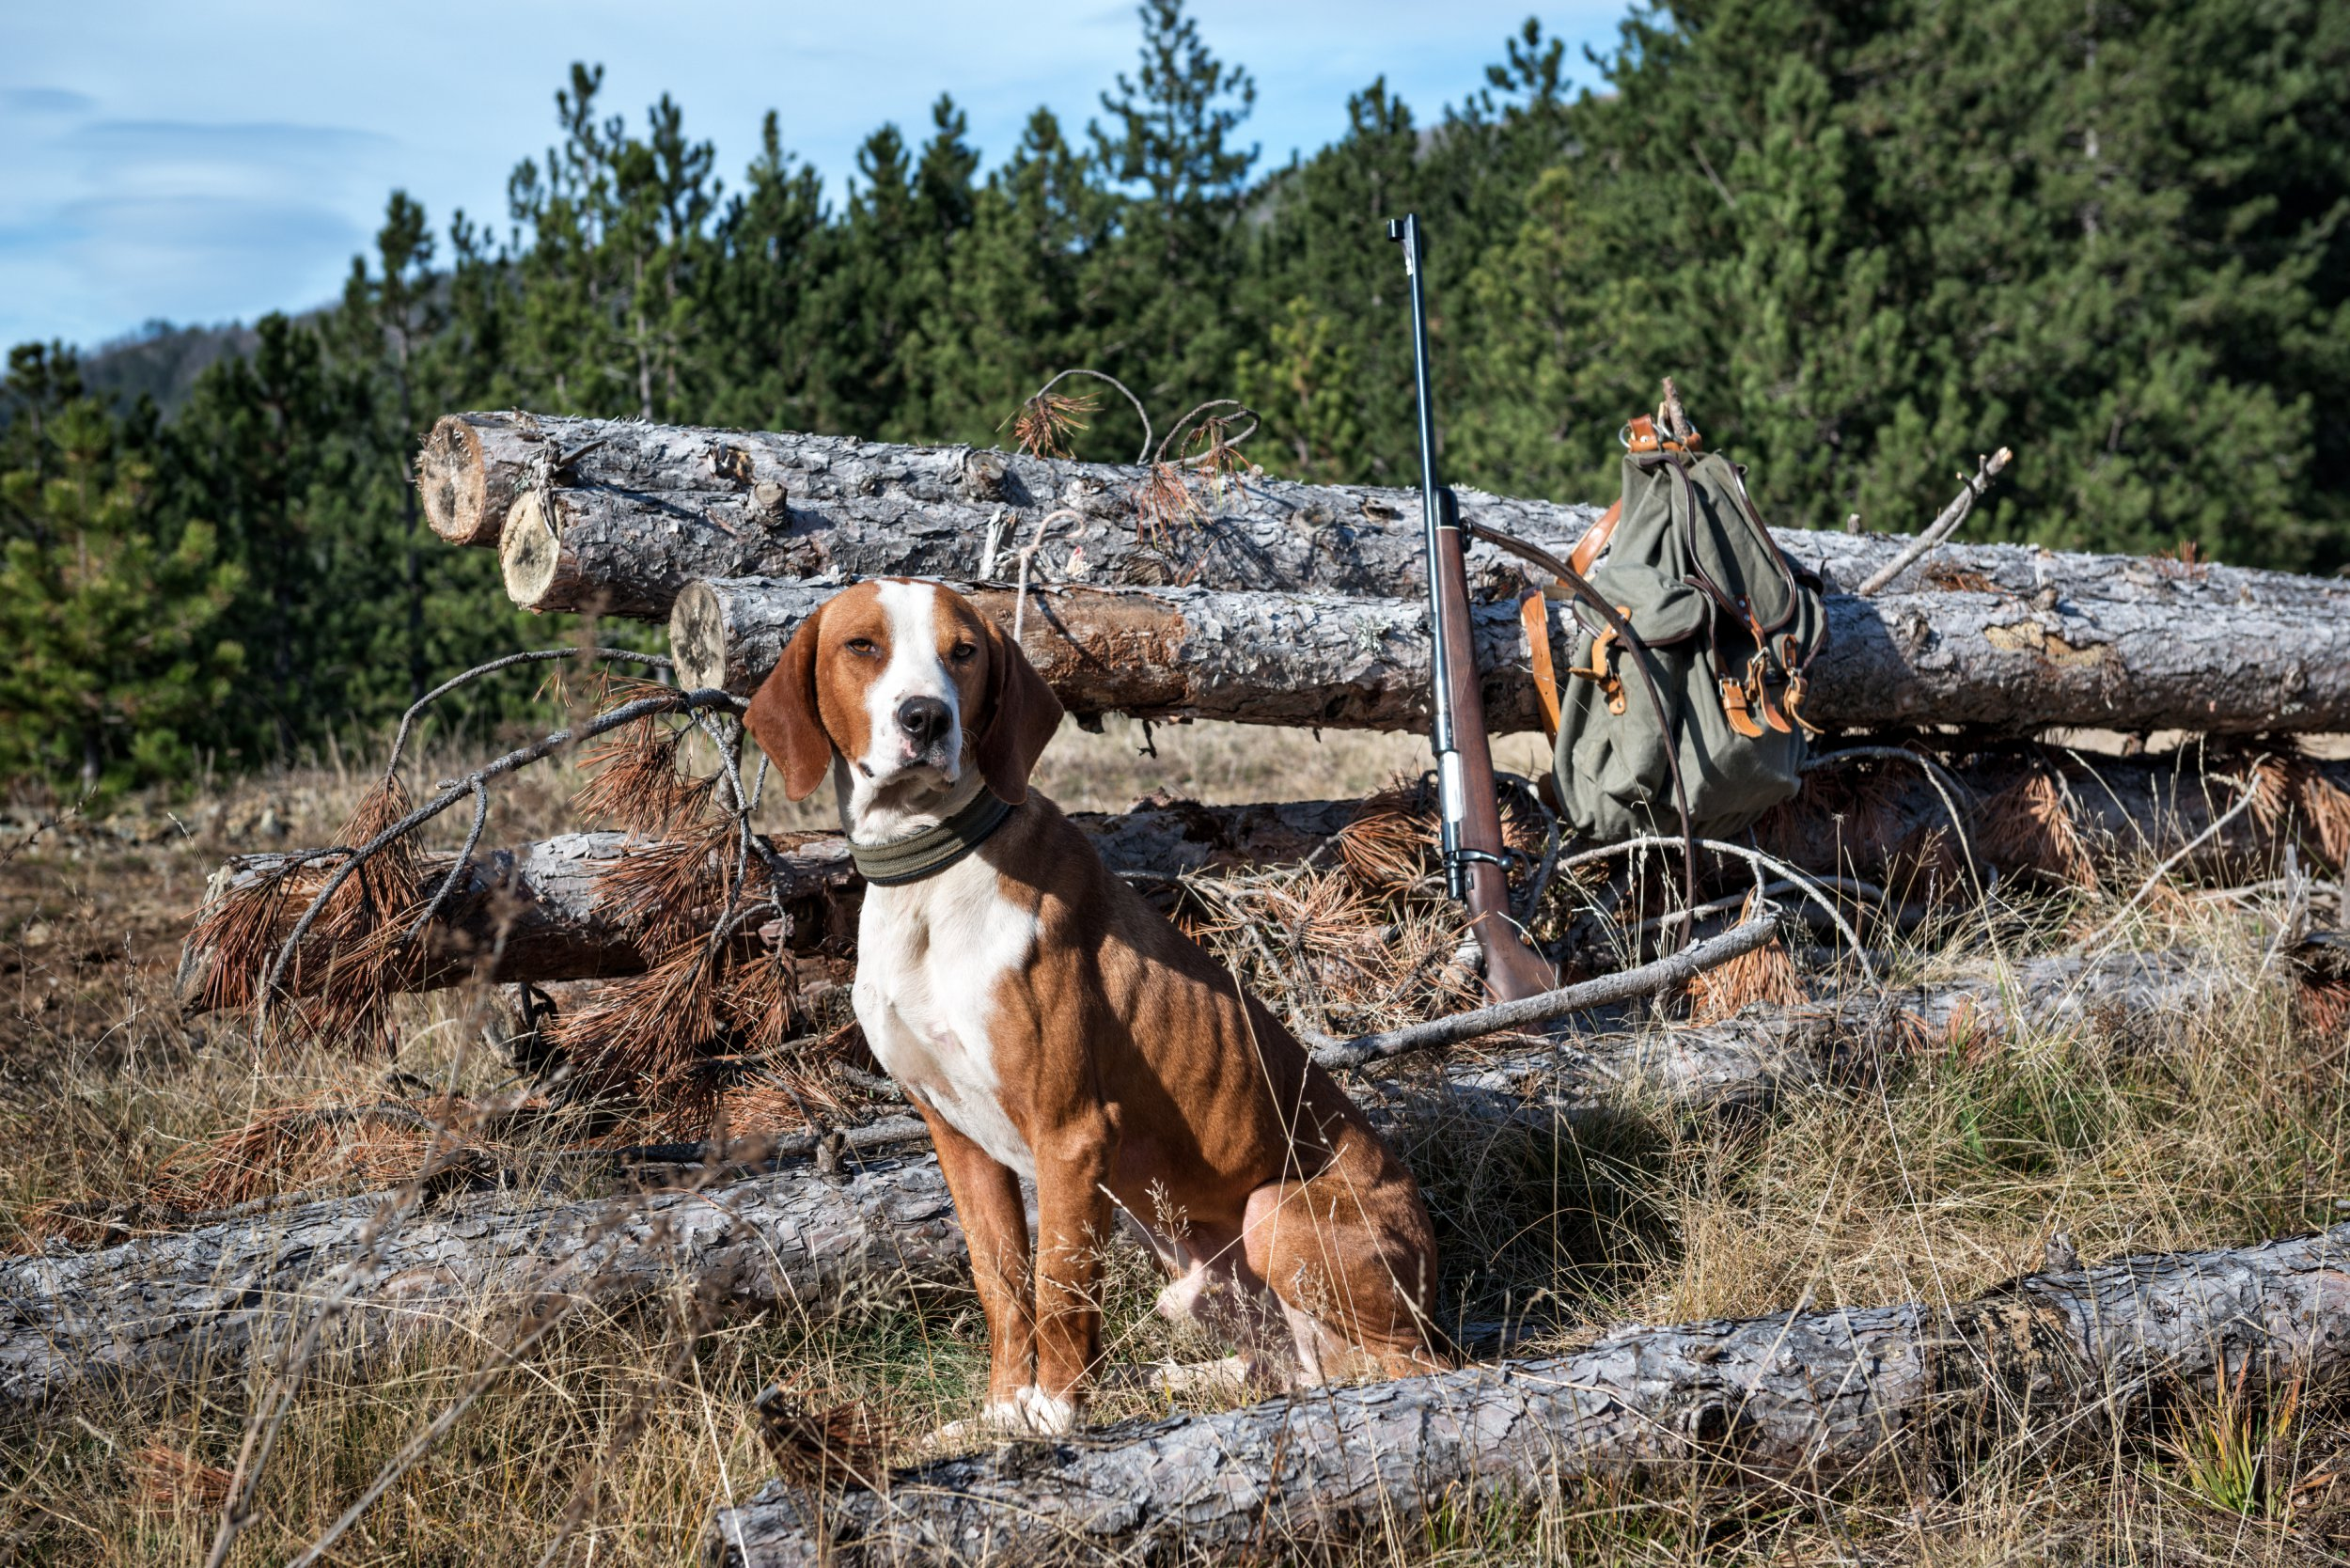 Hunting dog guarding the hunter's equipment in the woods.